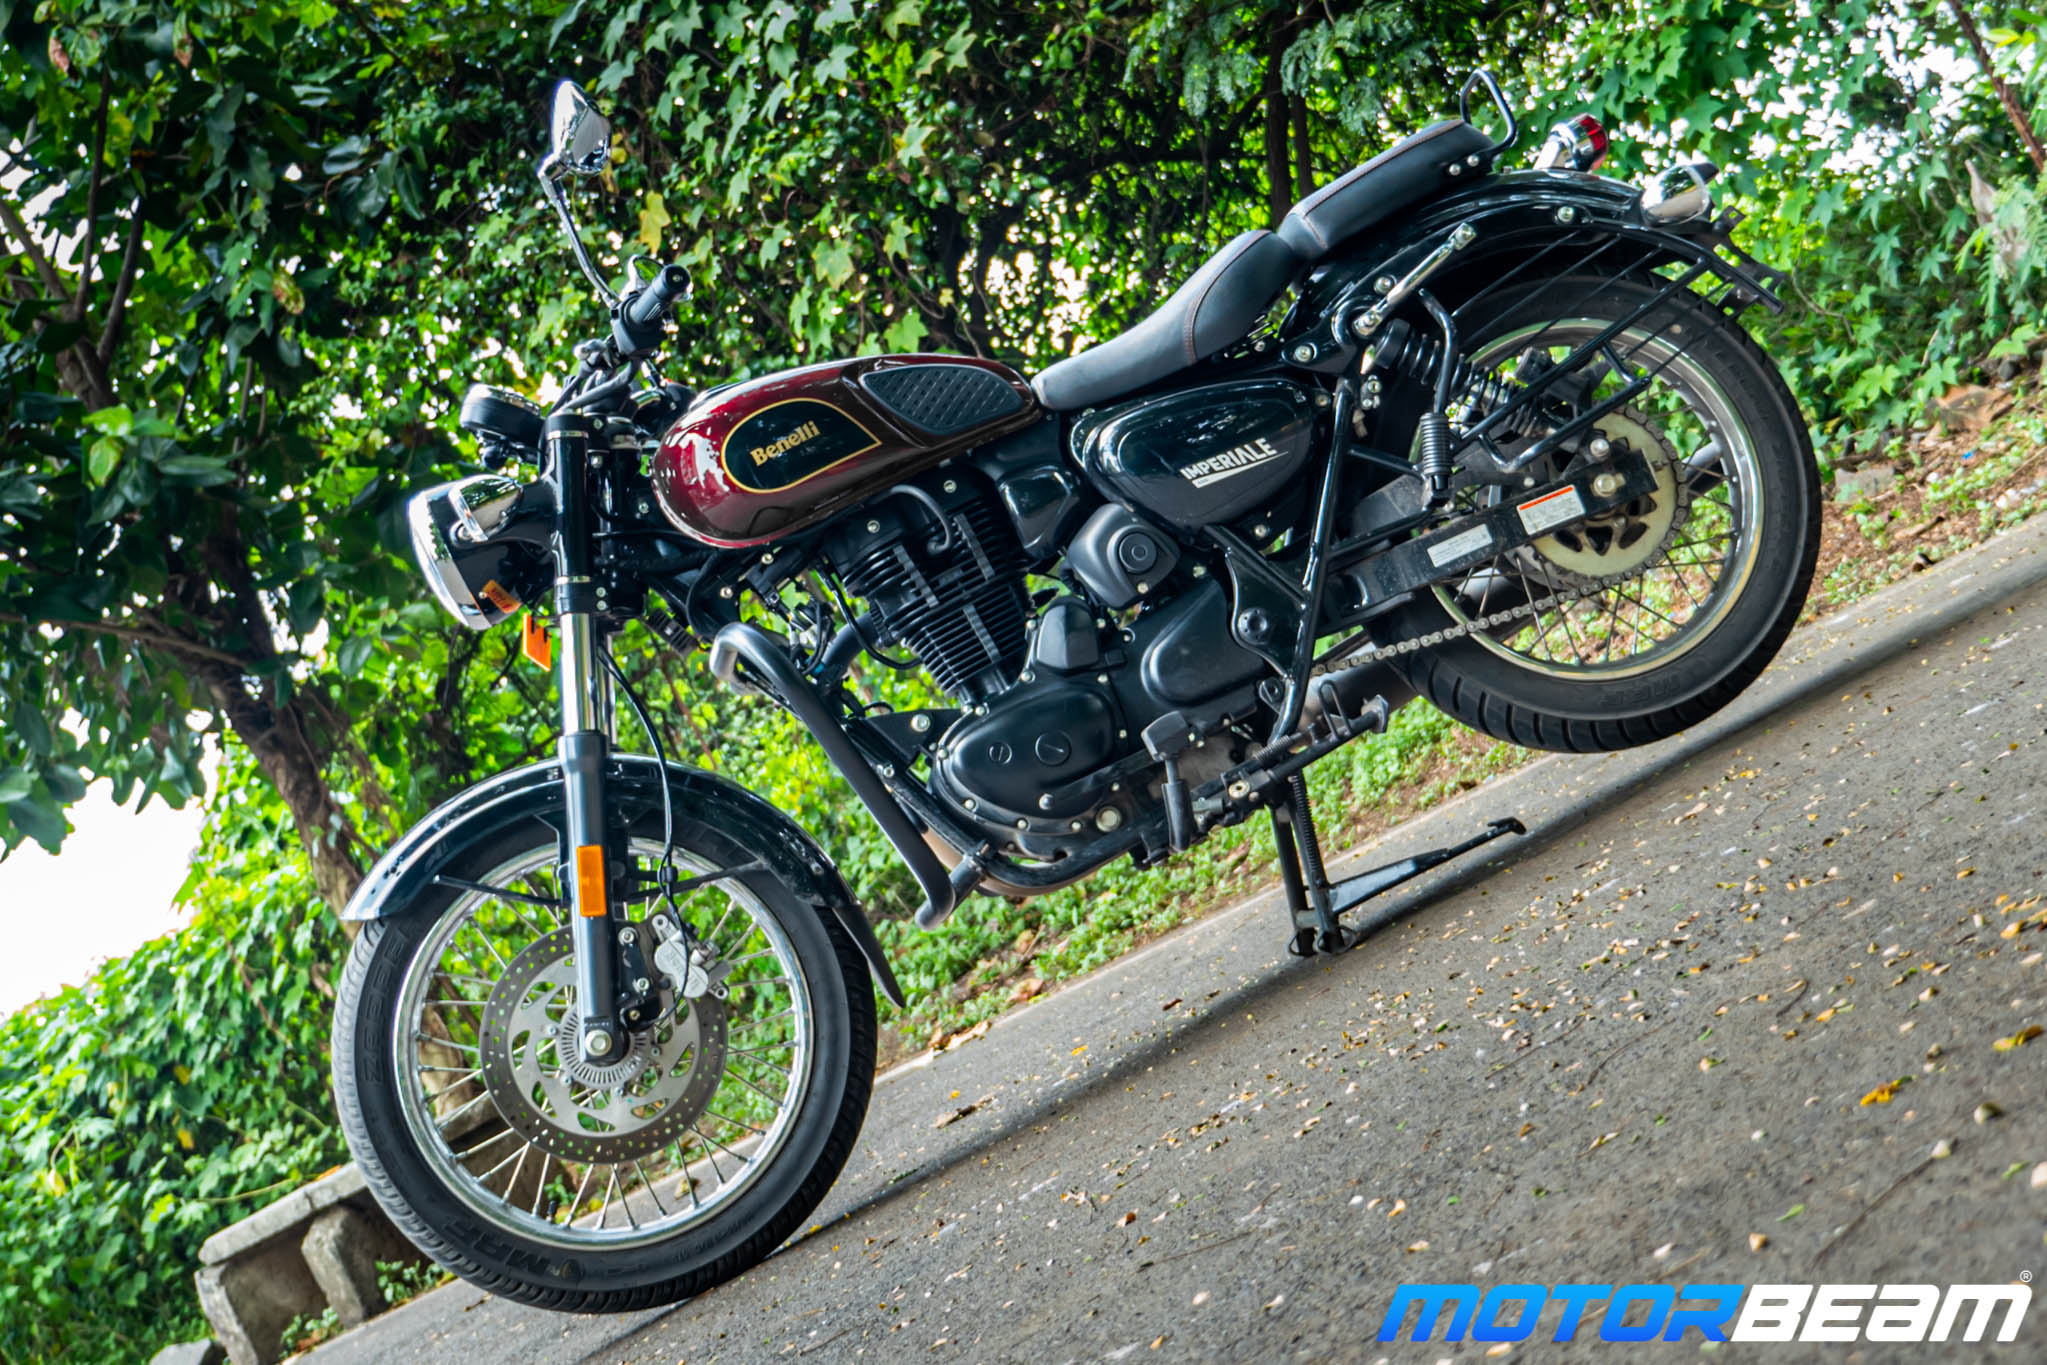 2020 Benelli Imperiale 400 Review 10